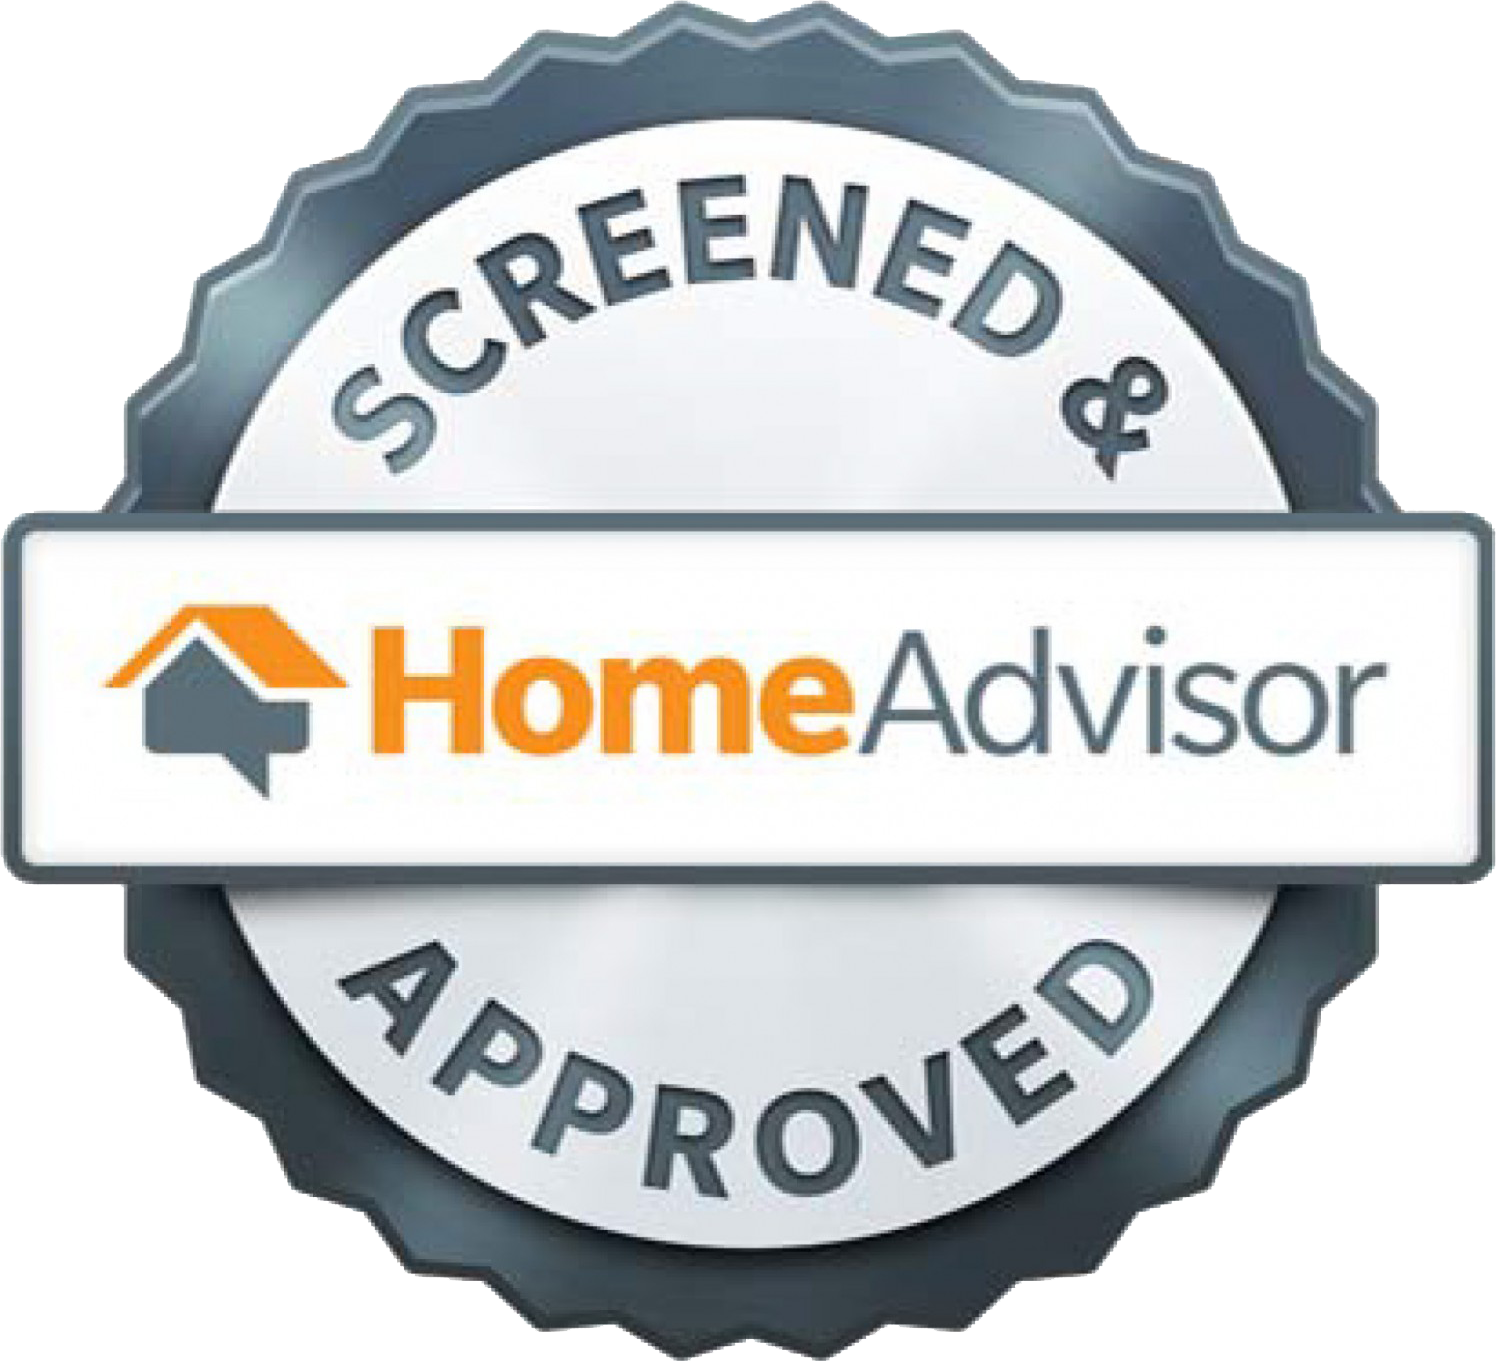 For Furnace repair in Waupun WI, trust a Home Advisor Screened and Approved contractor